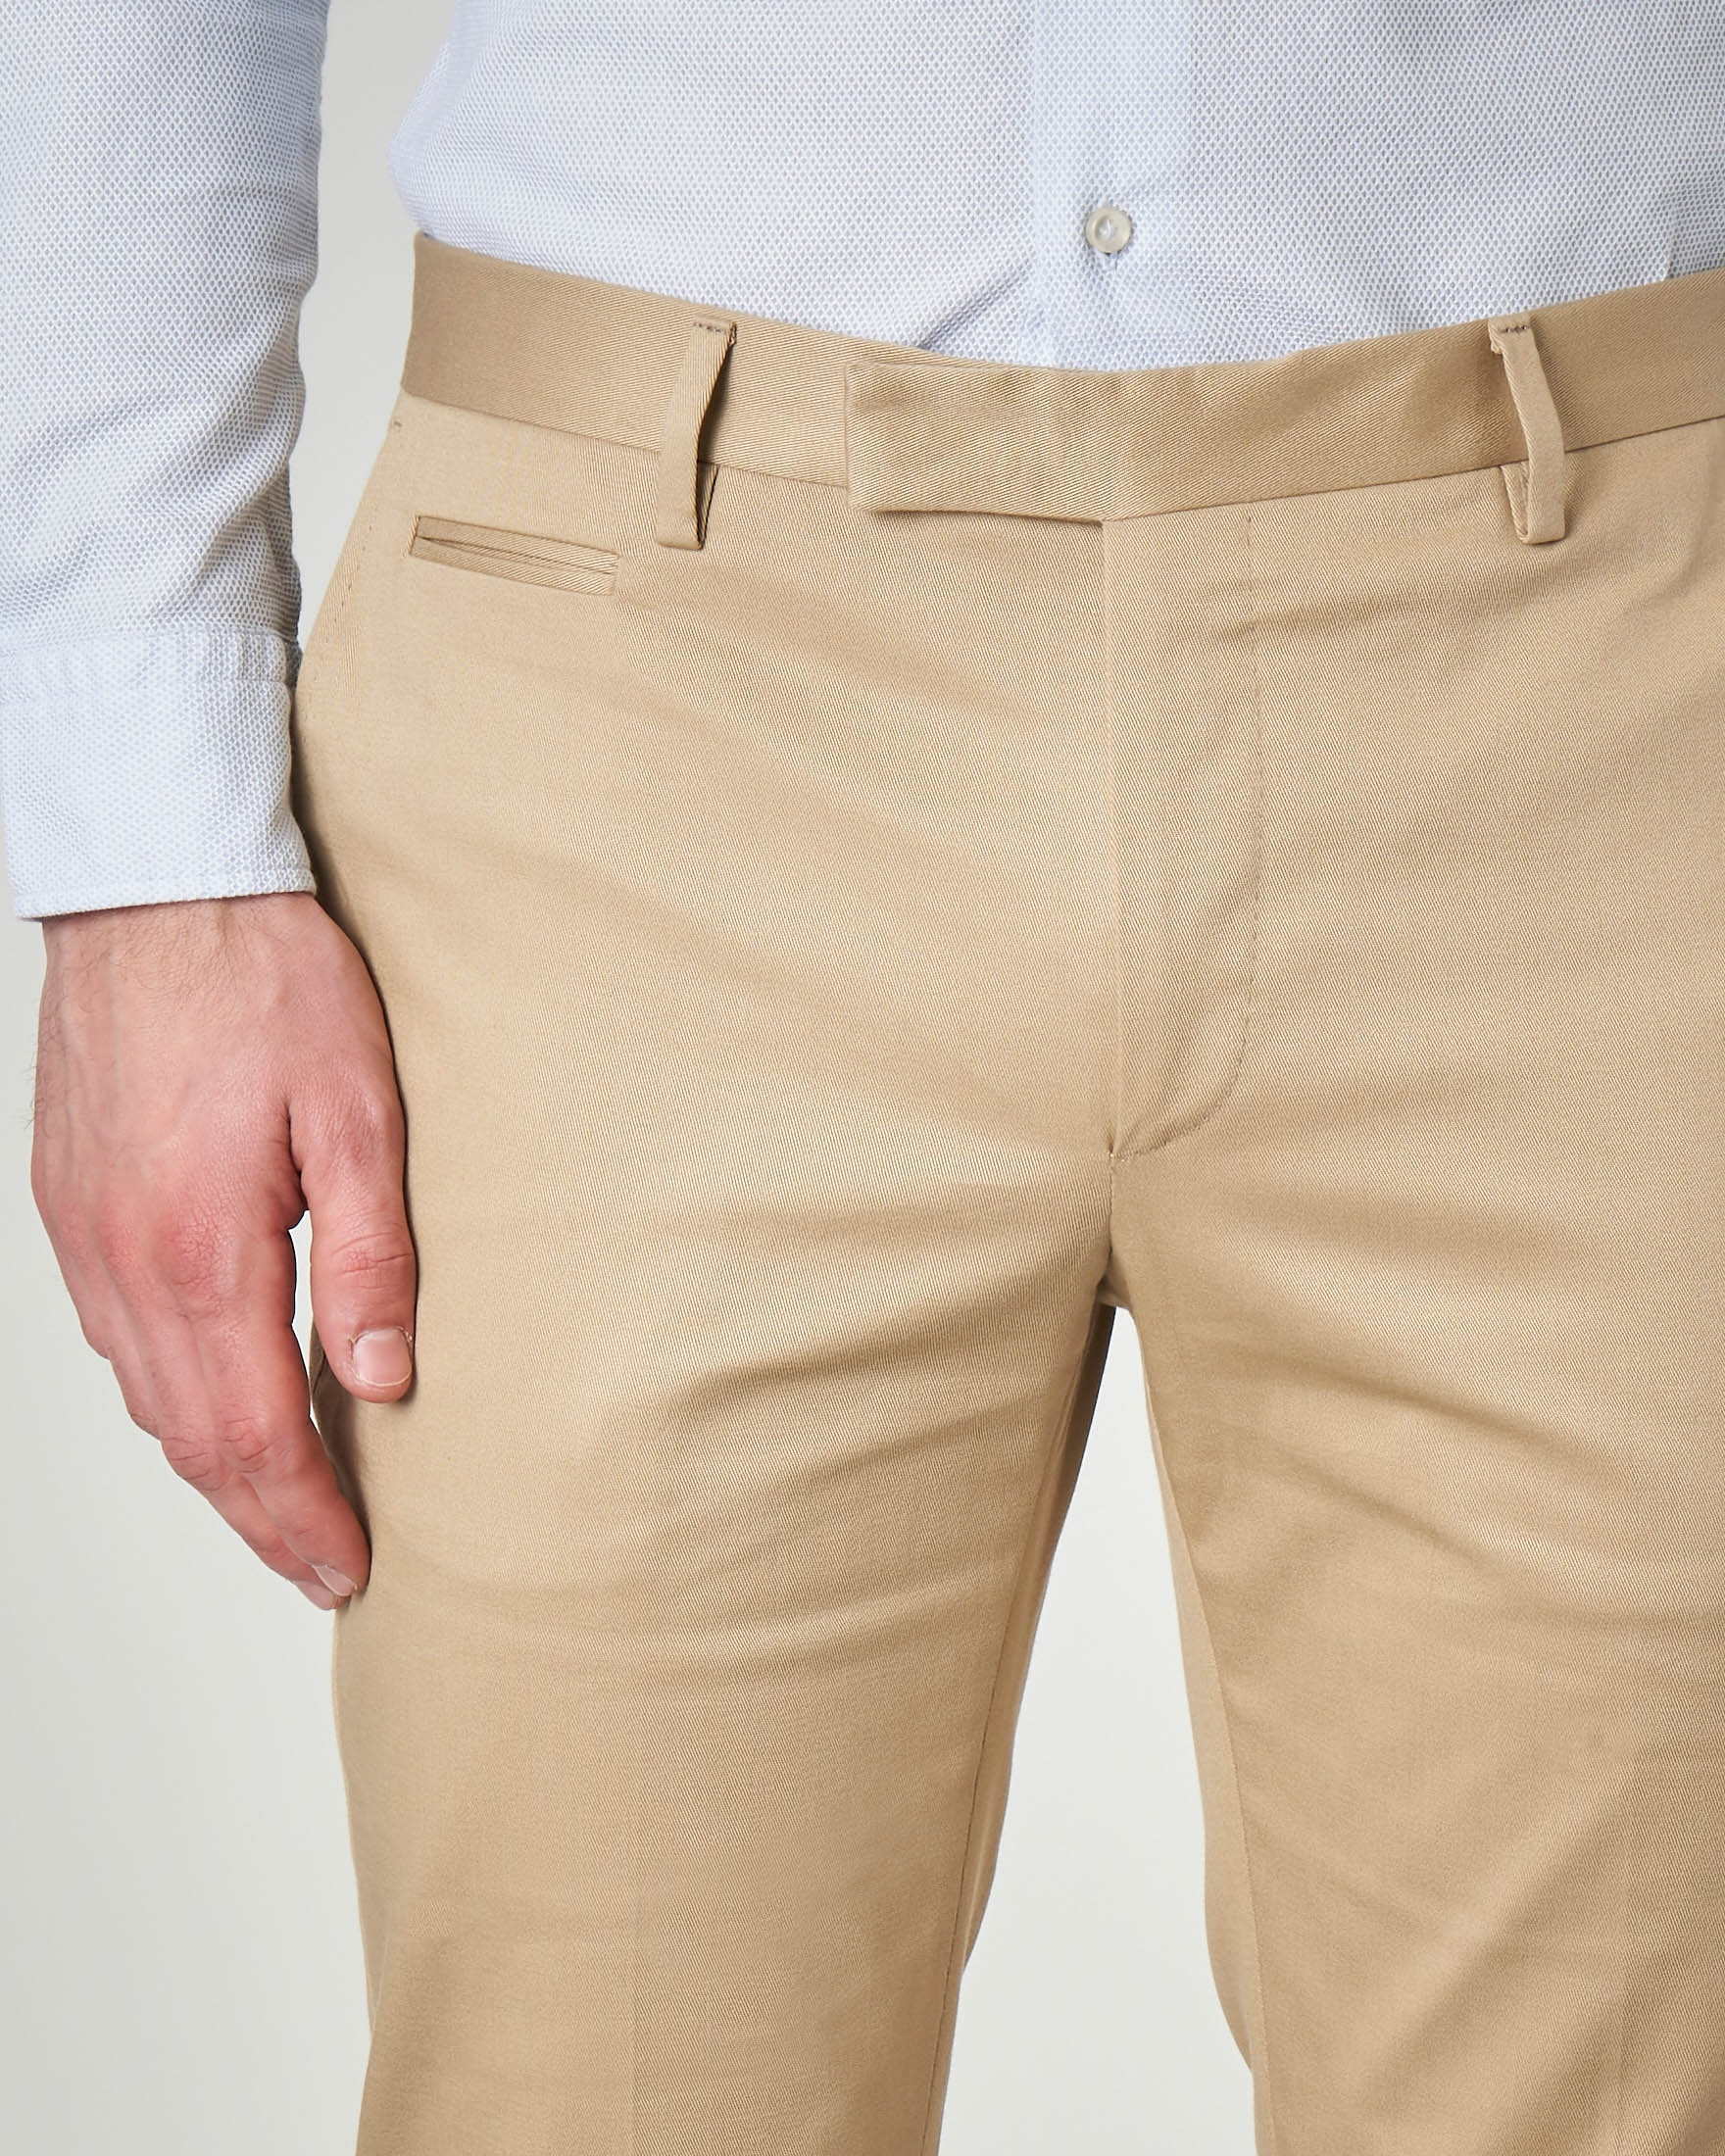 Pantalone beige in cotone stretch